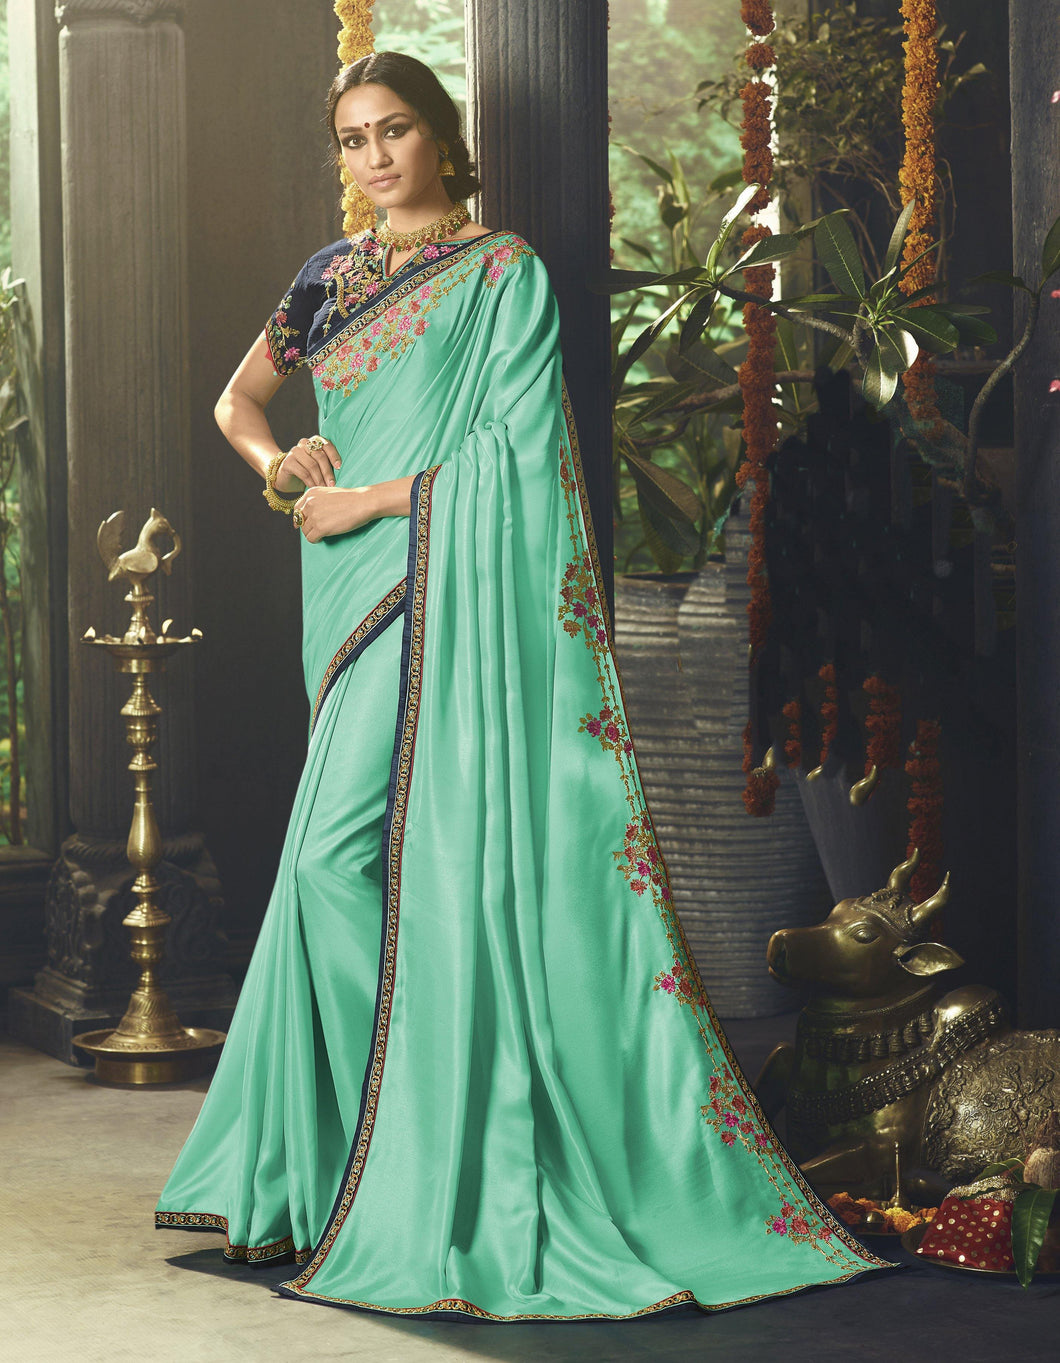 Alluring Turquoise Saree with Unstitched Blouse - The Wedding Brigade